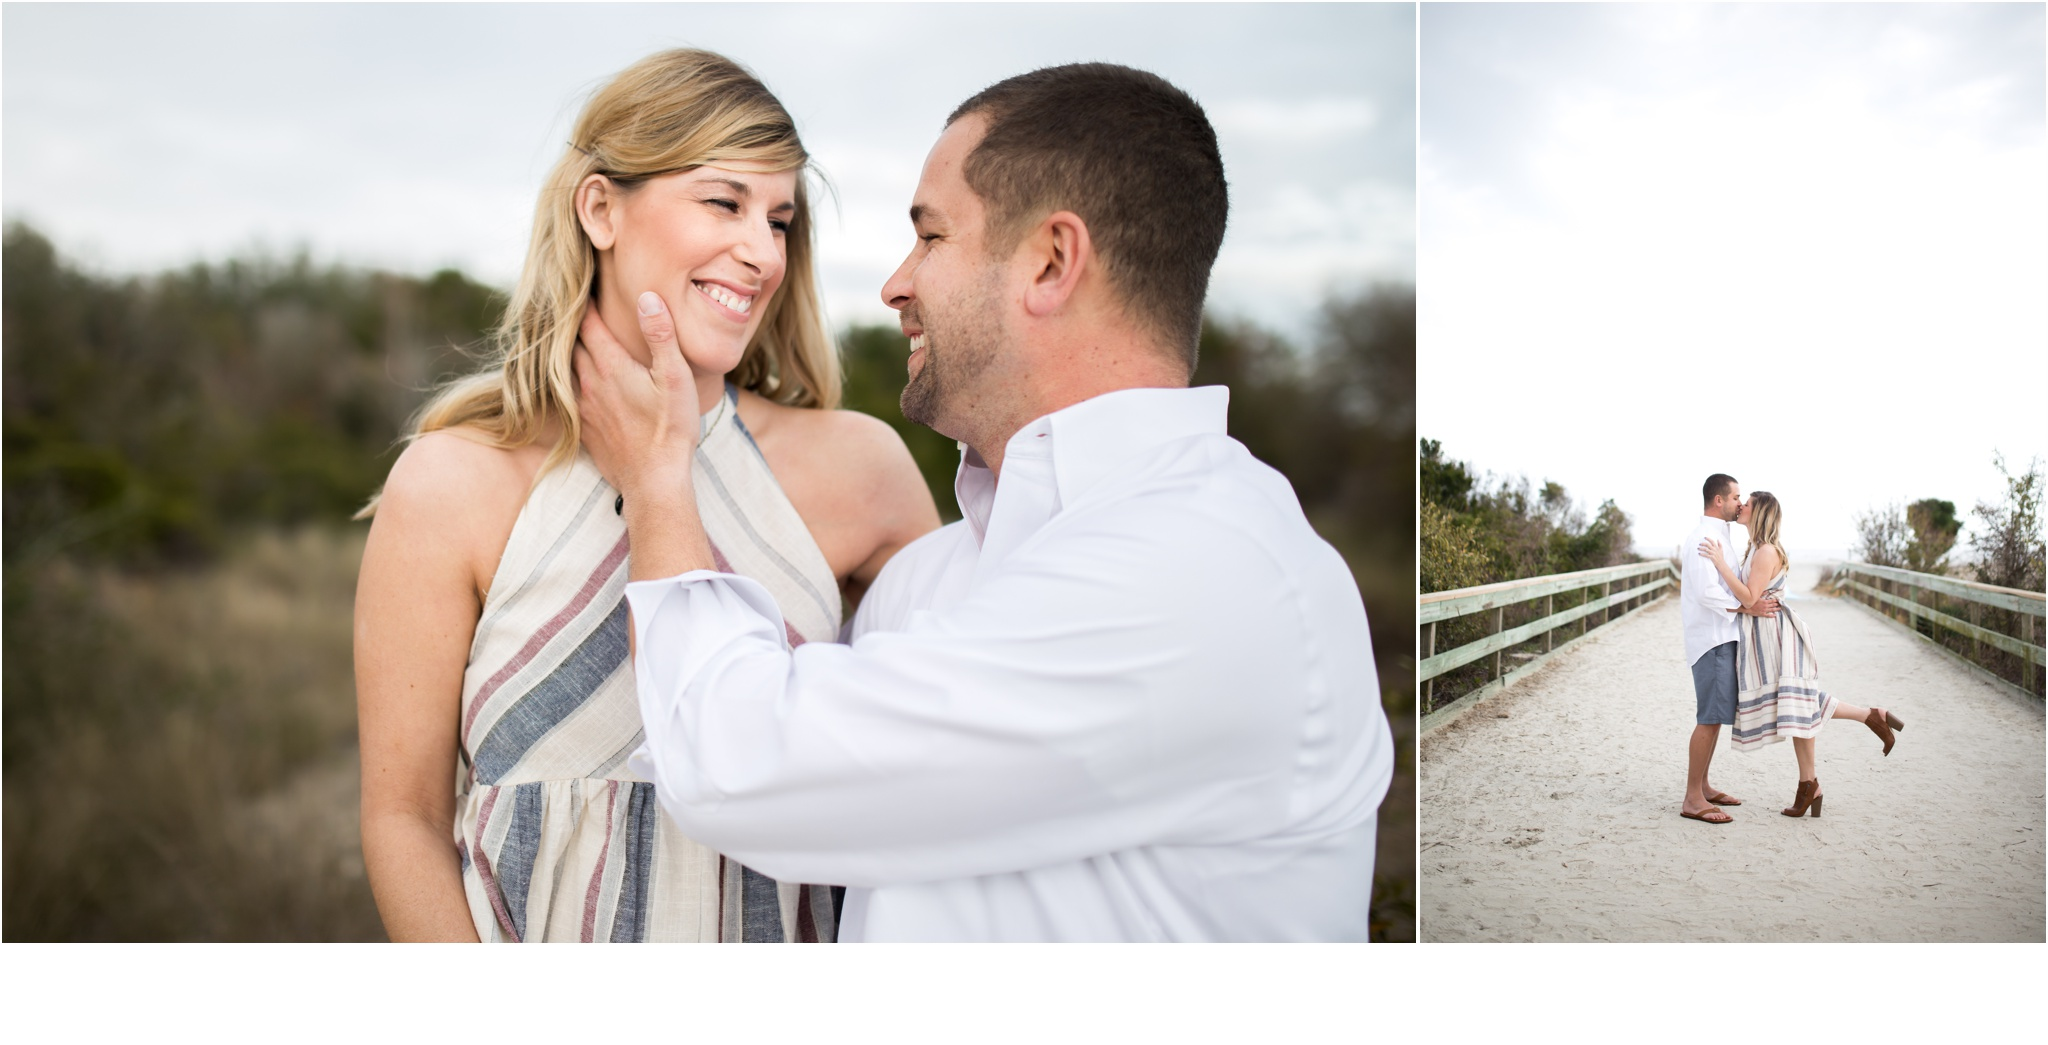 Rainey_Gregg_Photography_St._Simons_Island_Georgia_California_Wedding_Portrait_Photography_0562.jpg